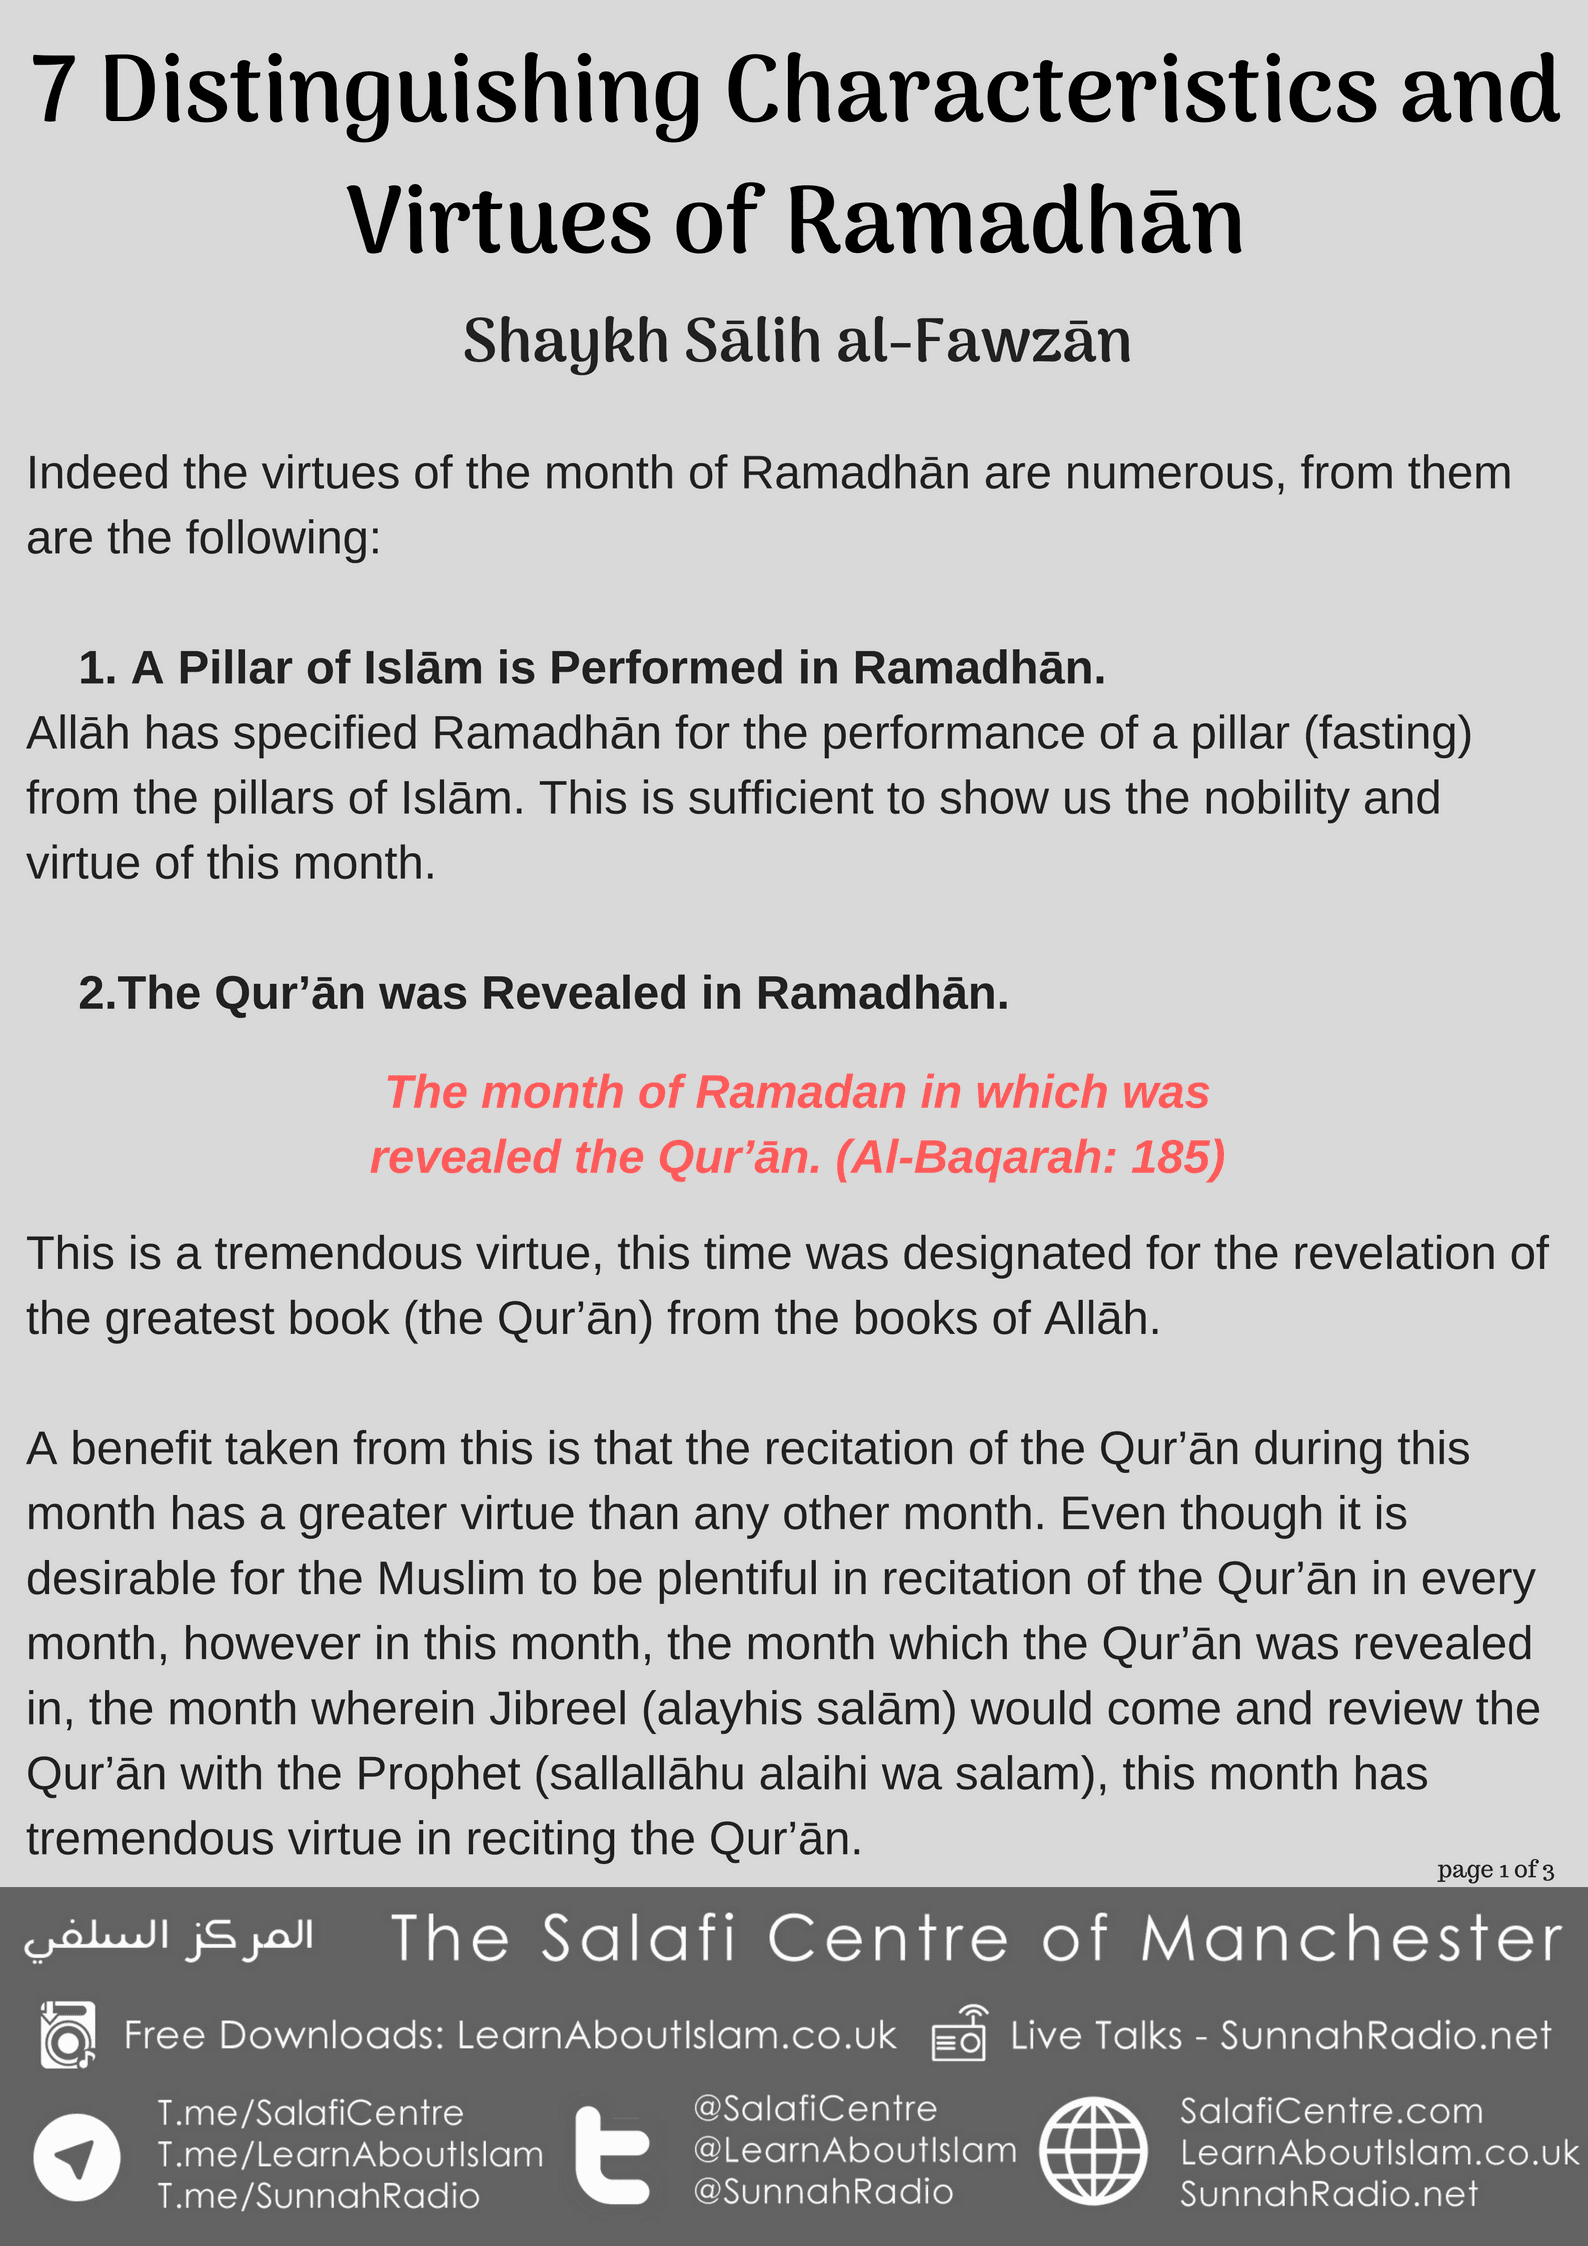 Distinguishing Characteristics and Virtues of Ramadhān – Shaykh Sālih al-Fawzān